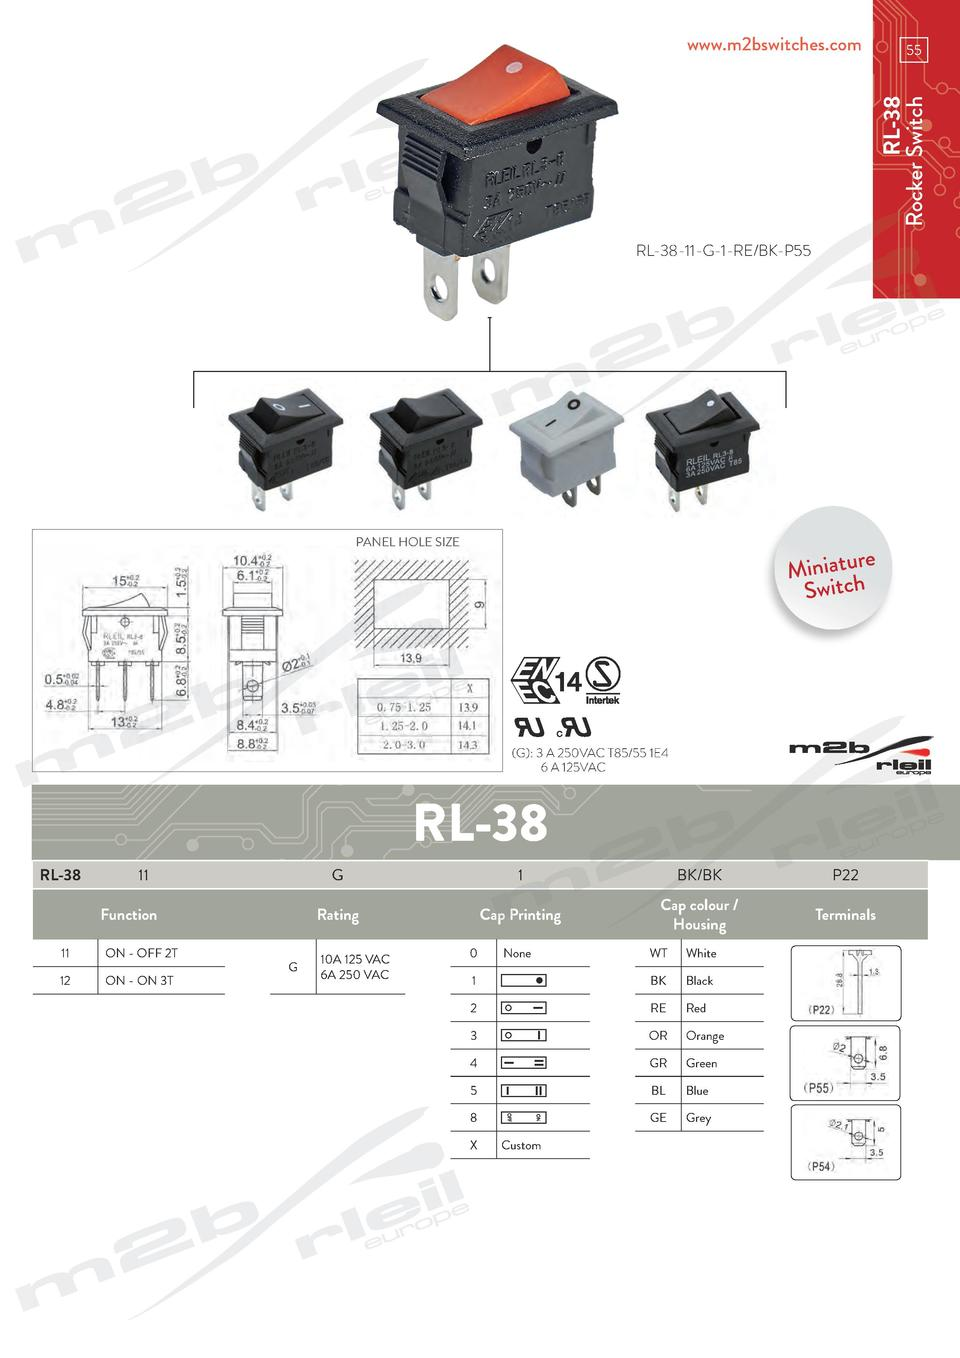 www.m2bswitches.com  RL-38 Rocker Switch  55  RL-38-11-G-1-RE BK-P55  PANEL HOLE SIZE  e Miniatur Switch   G   3 A 250VAC ...